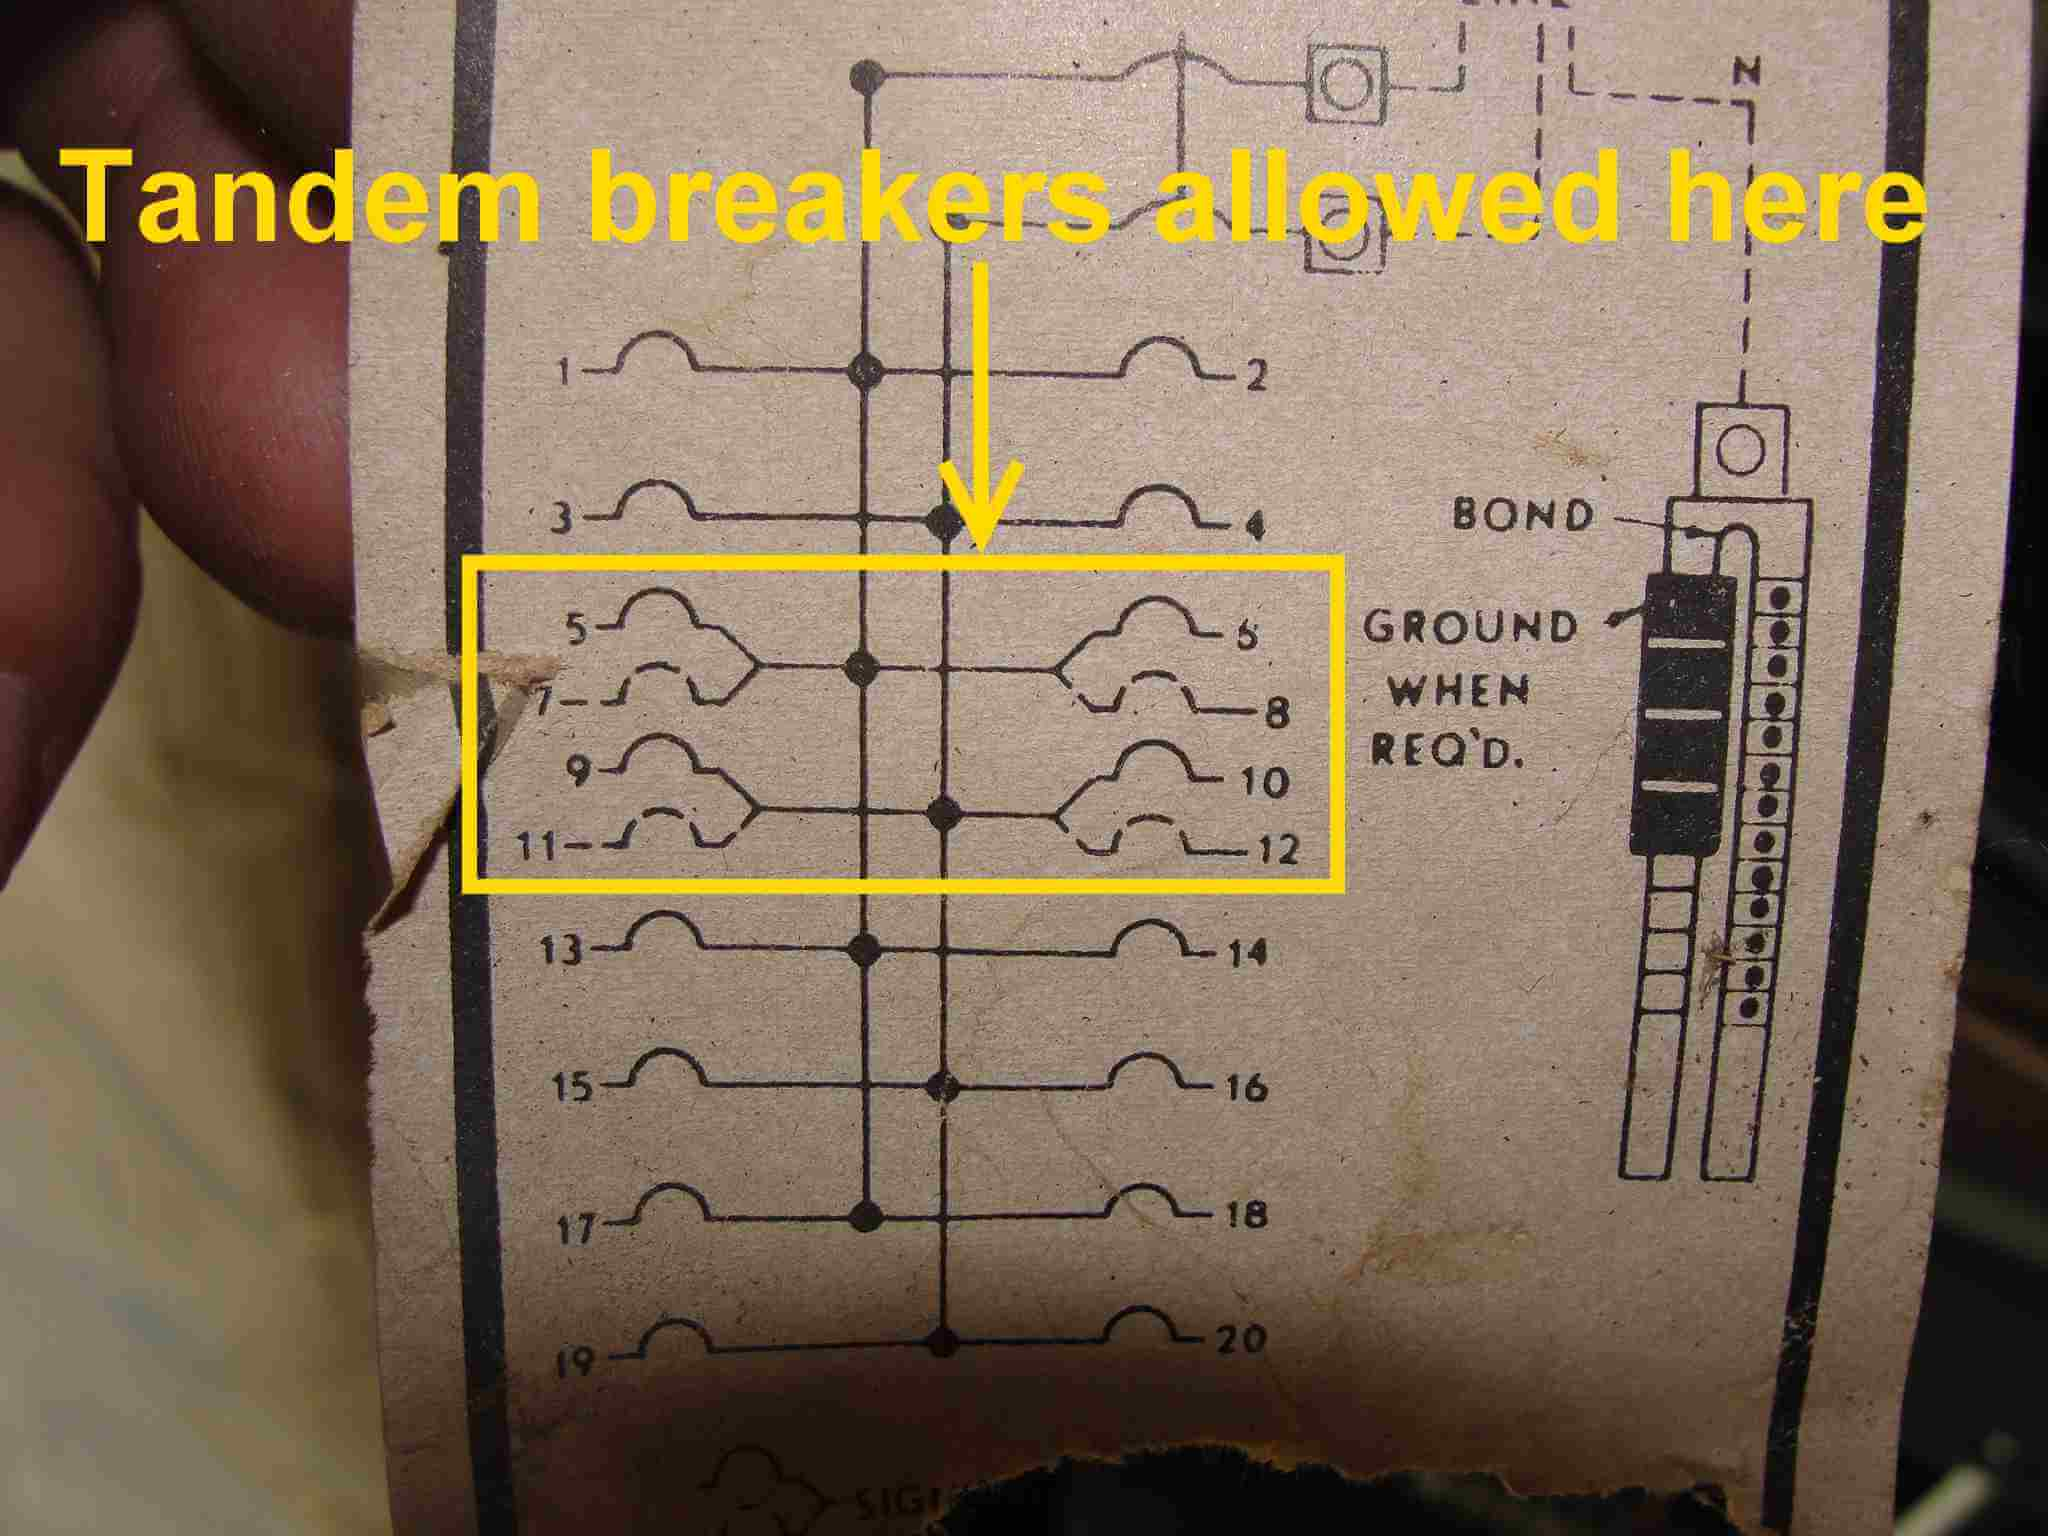 How To Know When Tandem Circuit Breakers Can Be Used Aka Cheater 220 110 3ph Panel Wiring Diagram Panelboard 2